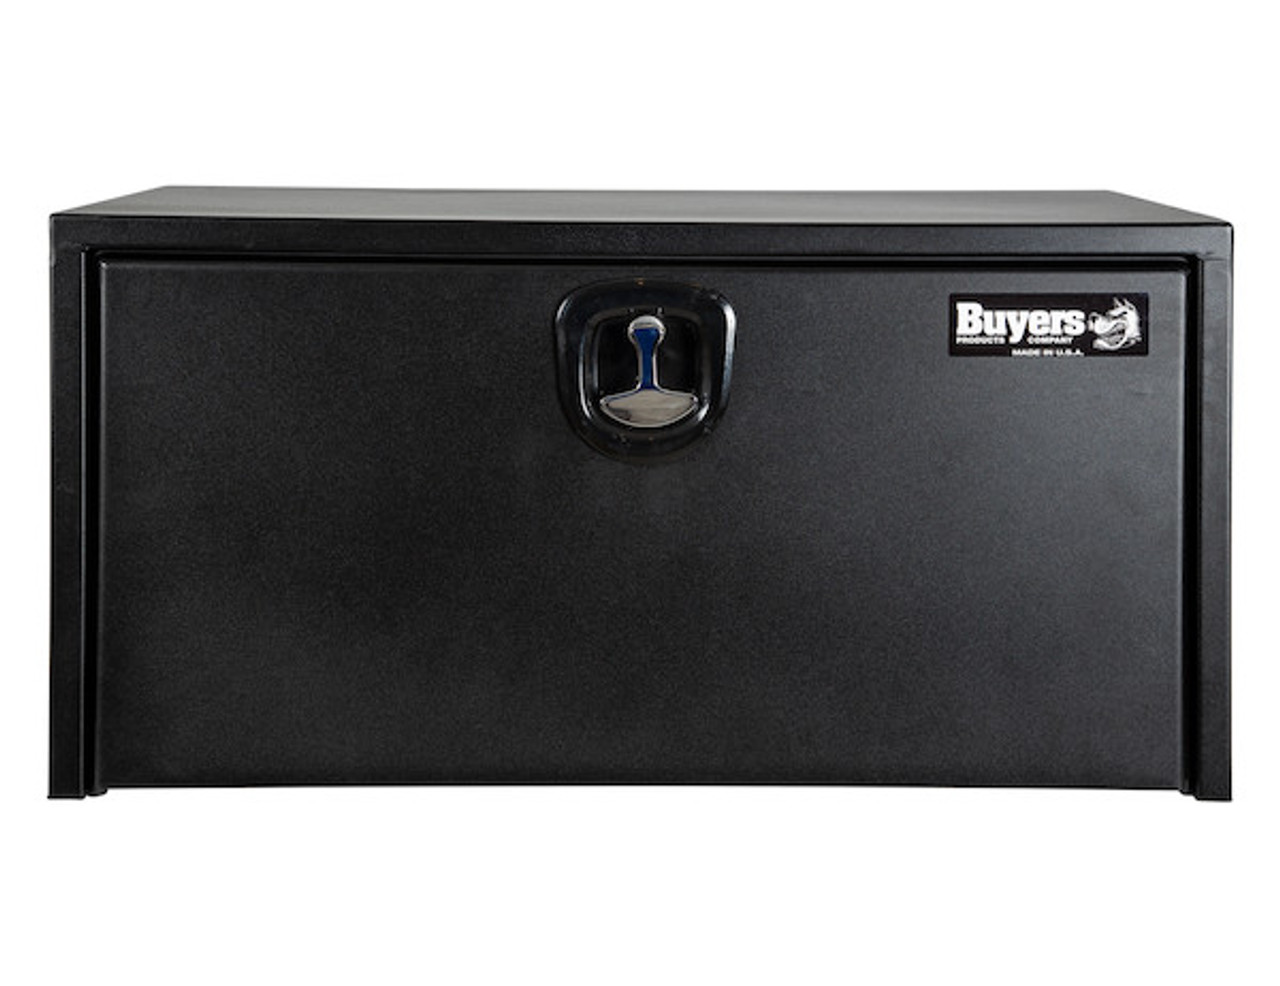 """1734505 BUYERS PRODUCTS TEXTURED MATTE BLACK STEEL UNDERBODY TRUCK TOOLBOX WITH 3-POINT LATCH 24""""Hx24""""Dx36""""W  Picture # 2"""